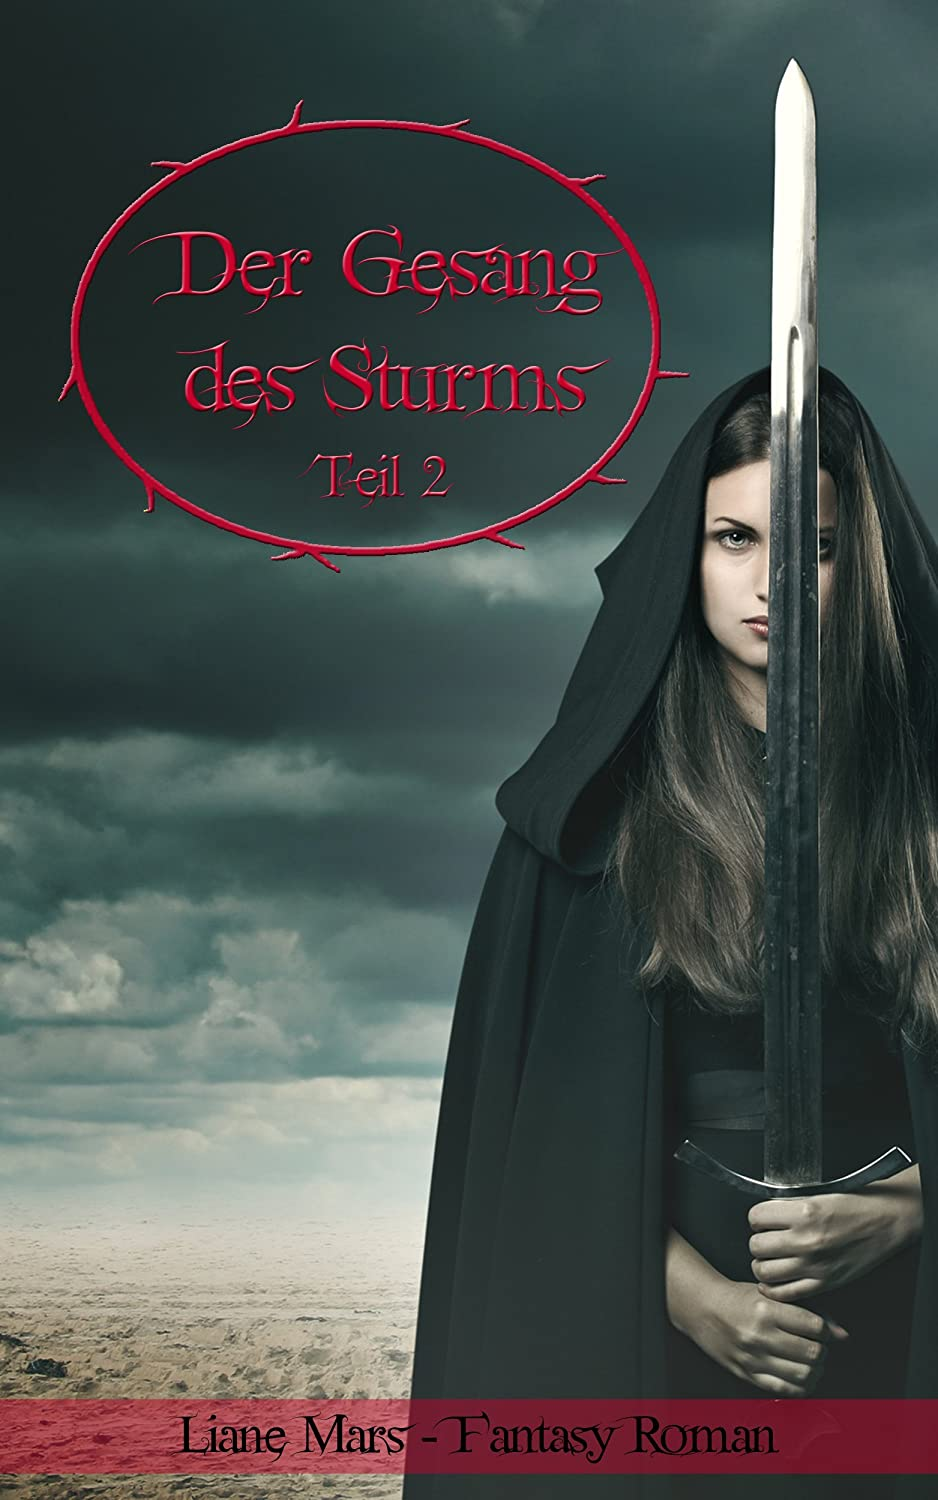 http://www.amazon.de/Gesang-Sturms-Fantasy-Roman-Sturm-Dilogie-ebook/dp/B011VGXR9C/ref=sr_1_2?ie=UTF8&qid=1437398539&sr=8-2&keywords=Der+Gesang+des+Sturms